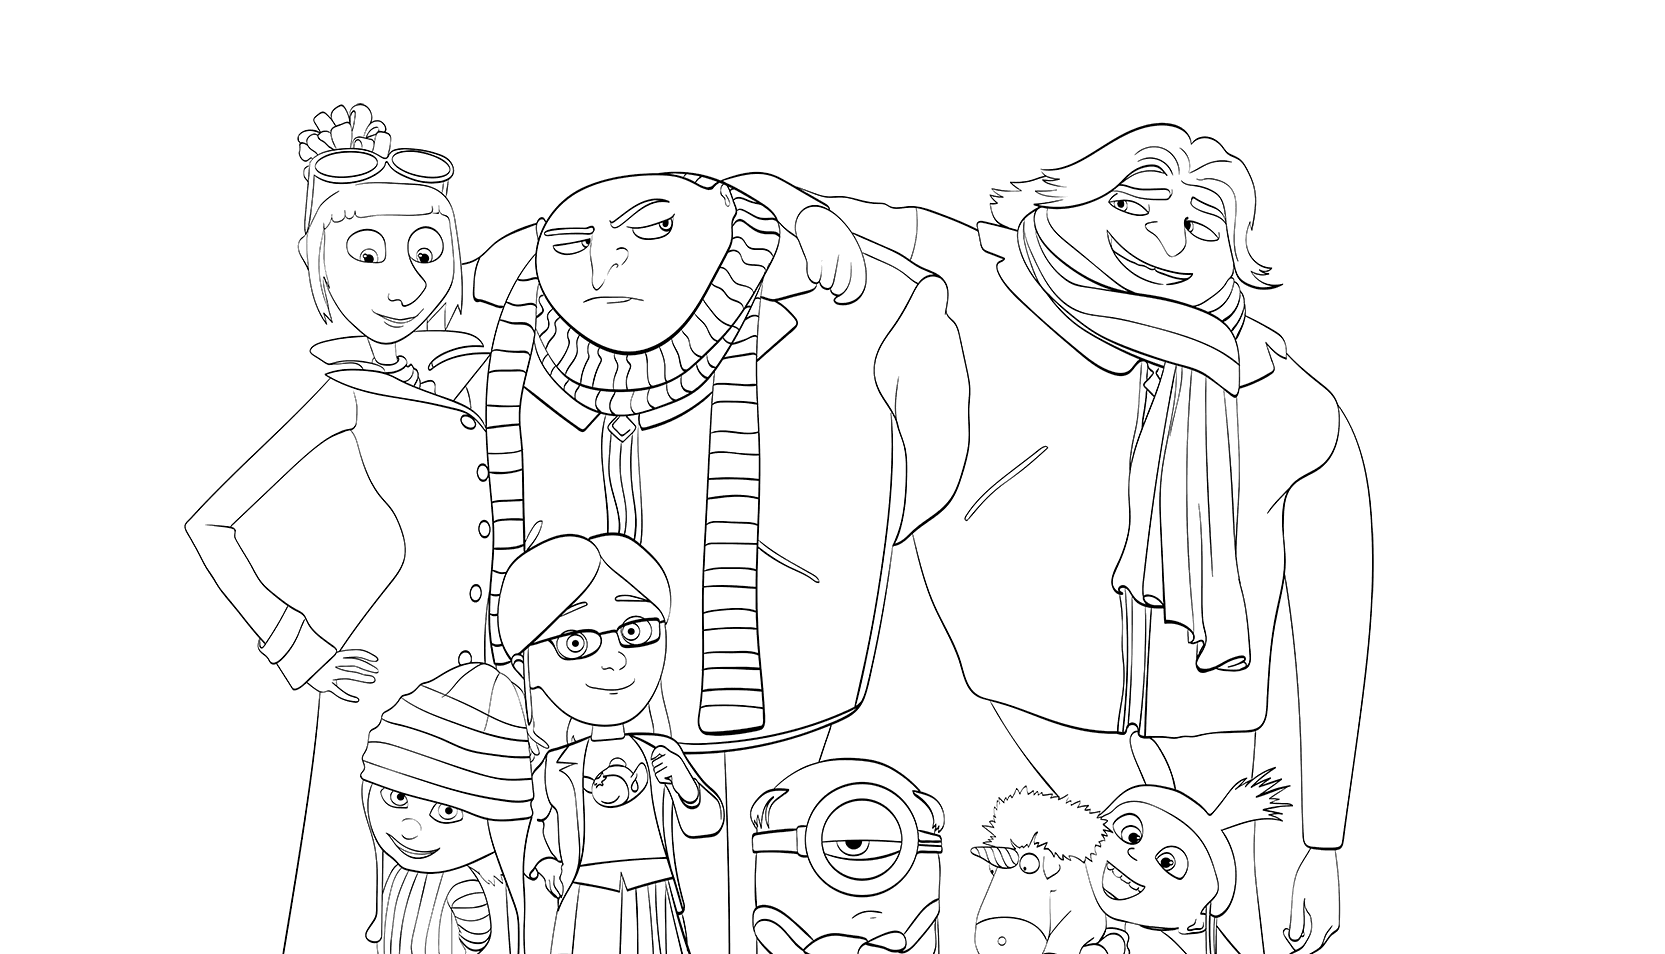 despicable me 2 free coloring pages to print despicable me 2 agnes and unicorn 2 coloring page me 2 free pages coloring to print despicable